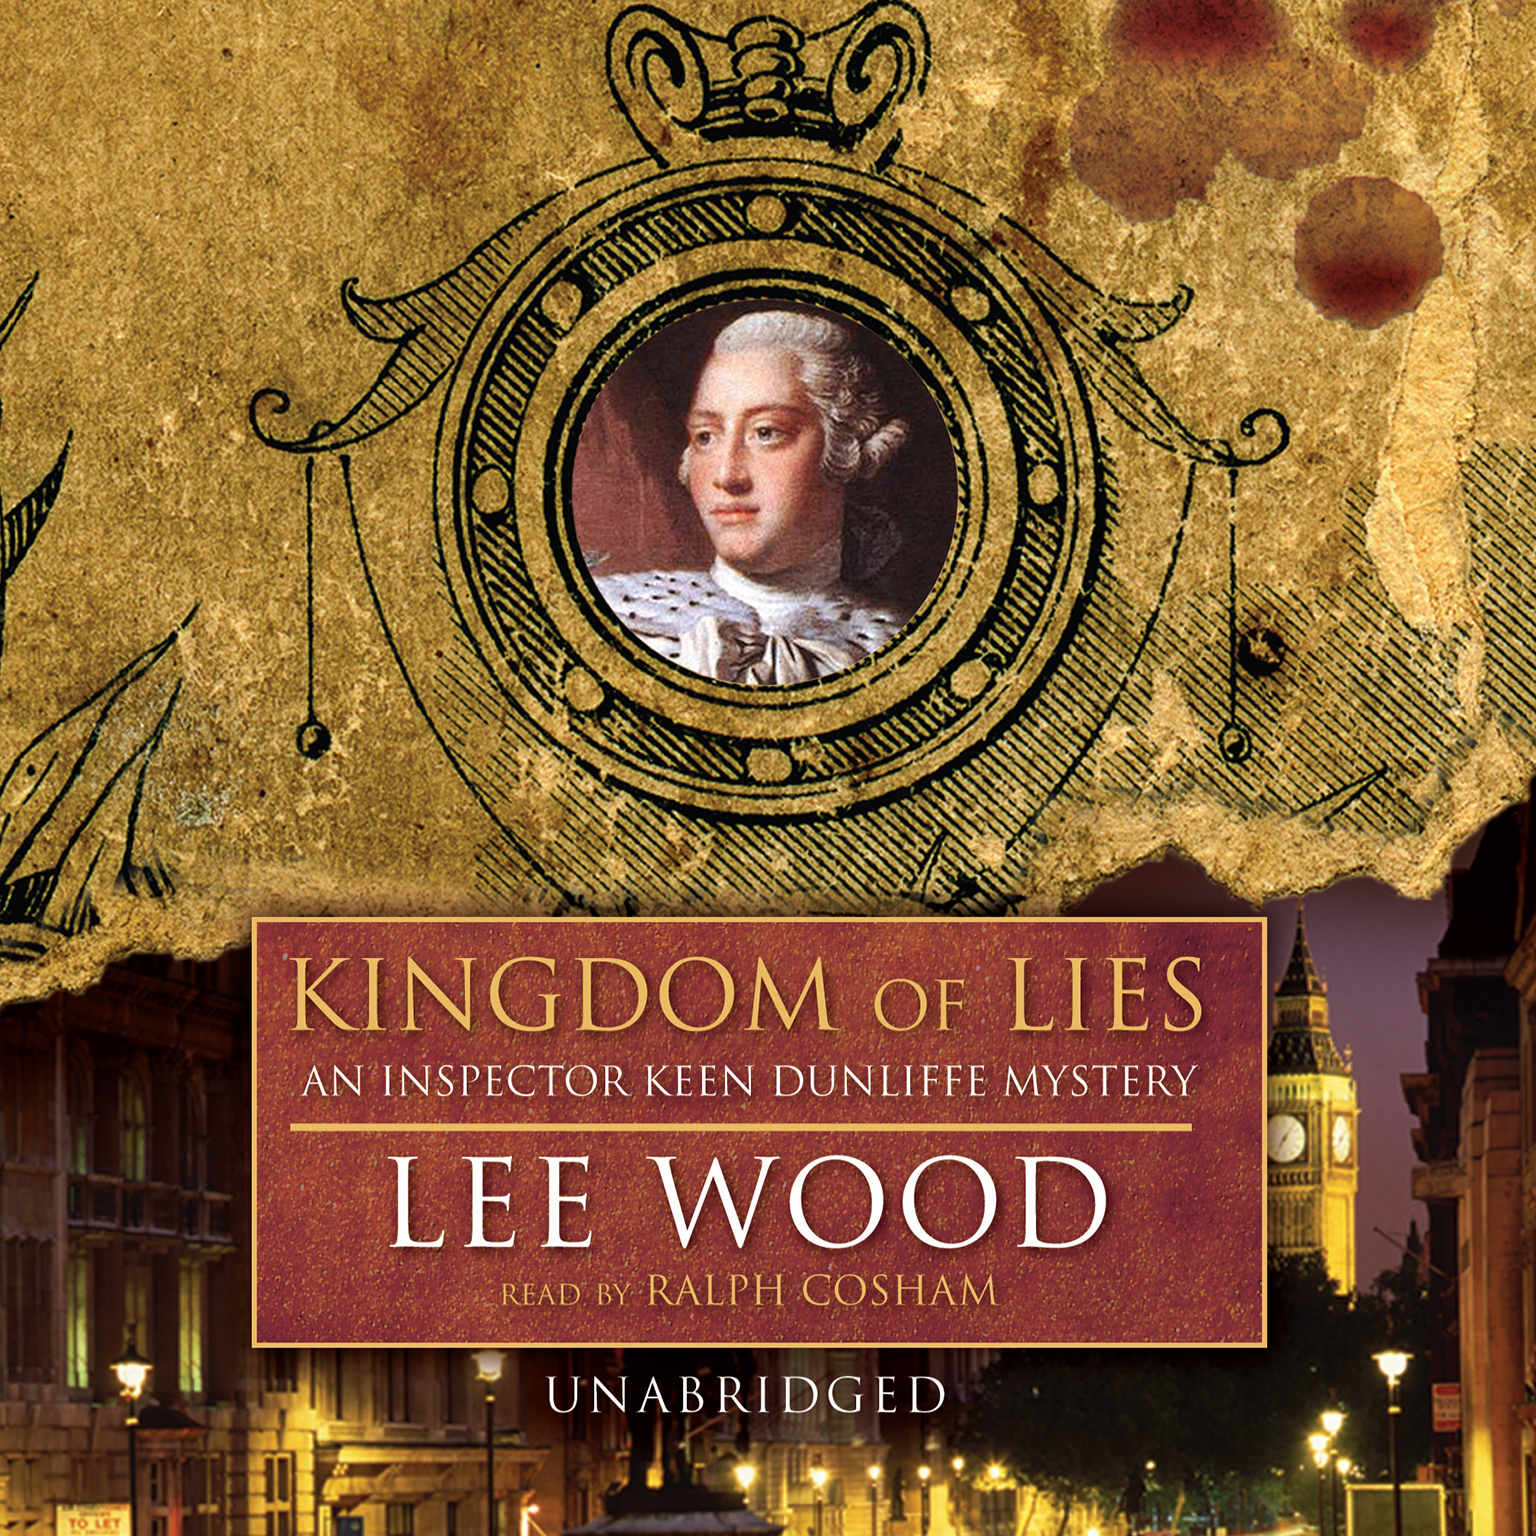 Printable Kingdom of Lies: An Inspector Keen Dunliffe Mystery Audiobook Cover Art